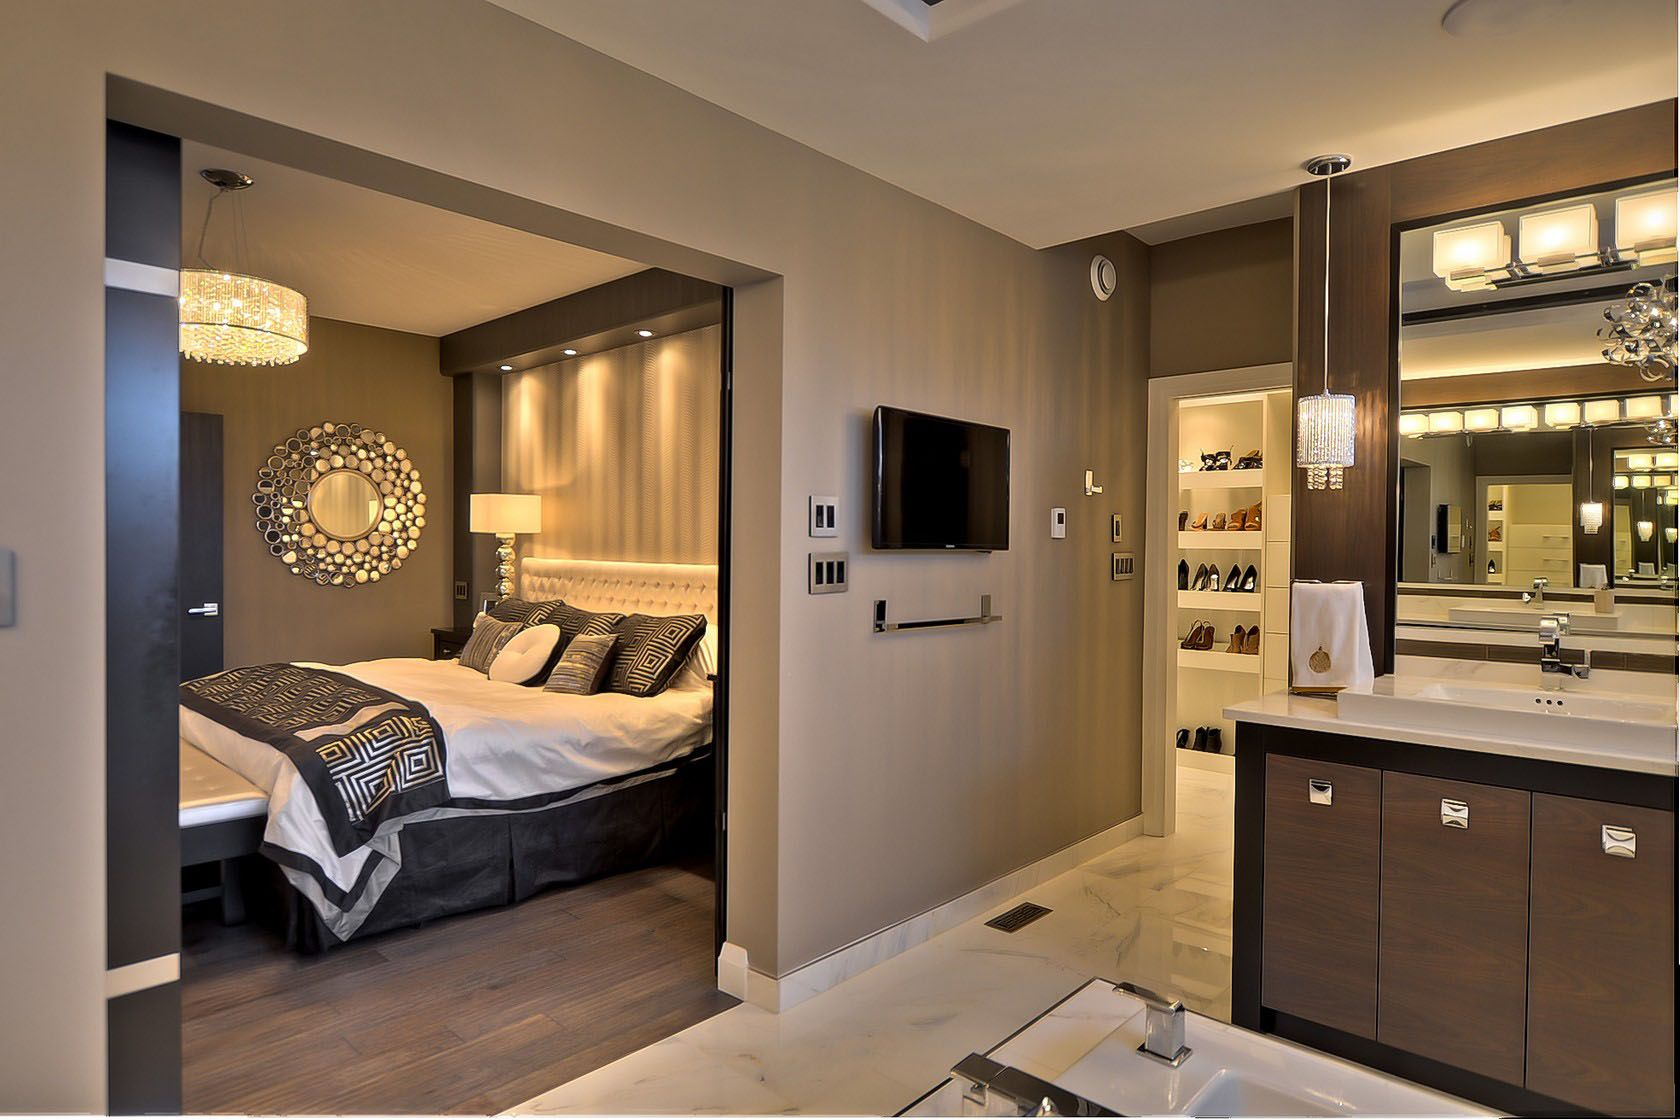 Creating A Luxurious Spacious Master Bedroom Is Something We All Dream Of The Beauty Of Having A Walk Through Walk I Home Master Bedrooms Decor Dream House Spacious and luxurious bedroom